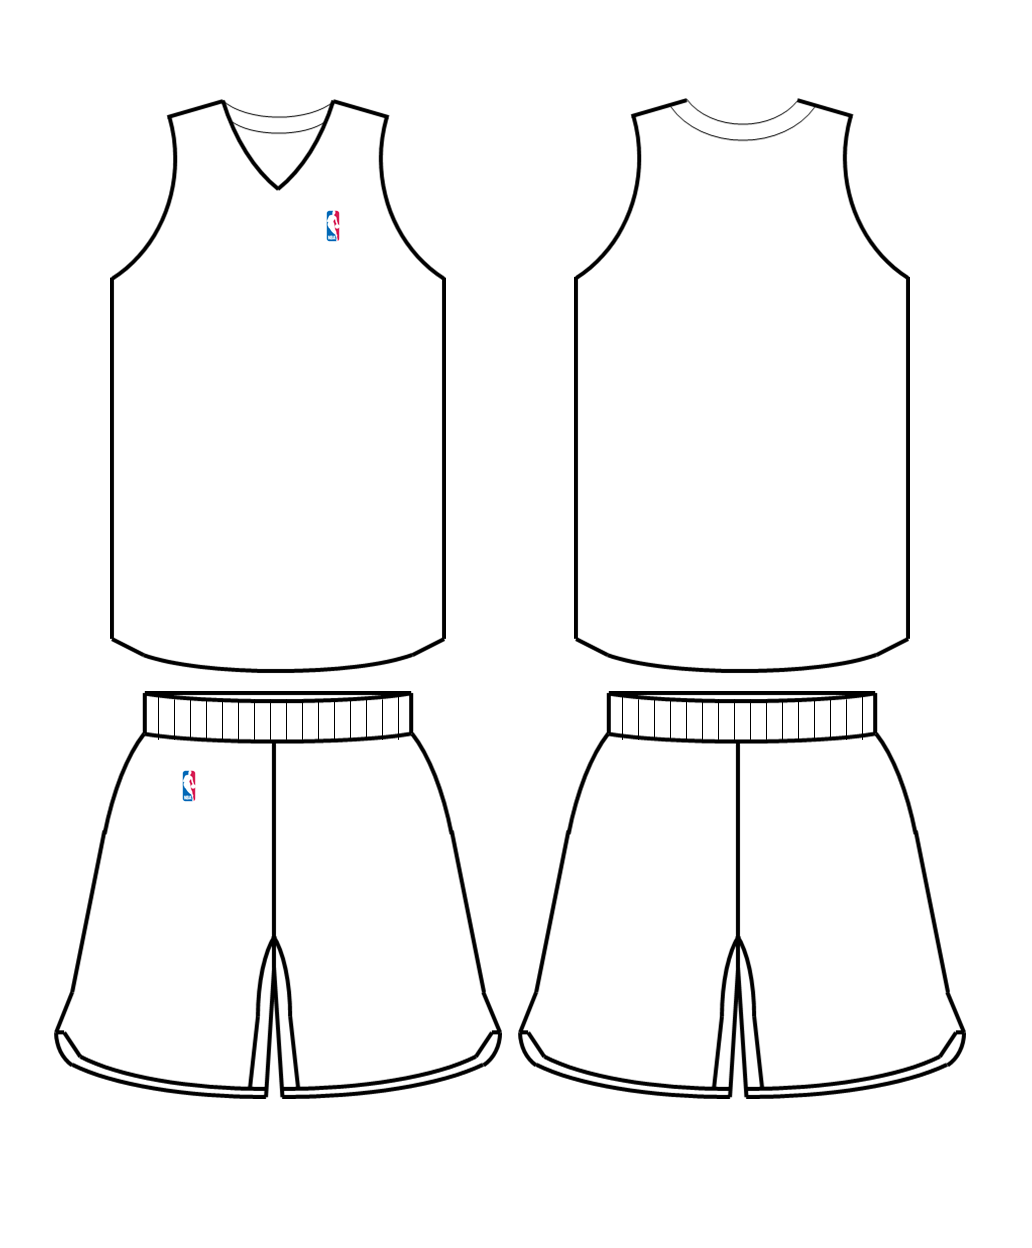 Blank Football Jersey Coloring Page - AZ Coloring Pages